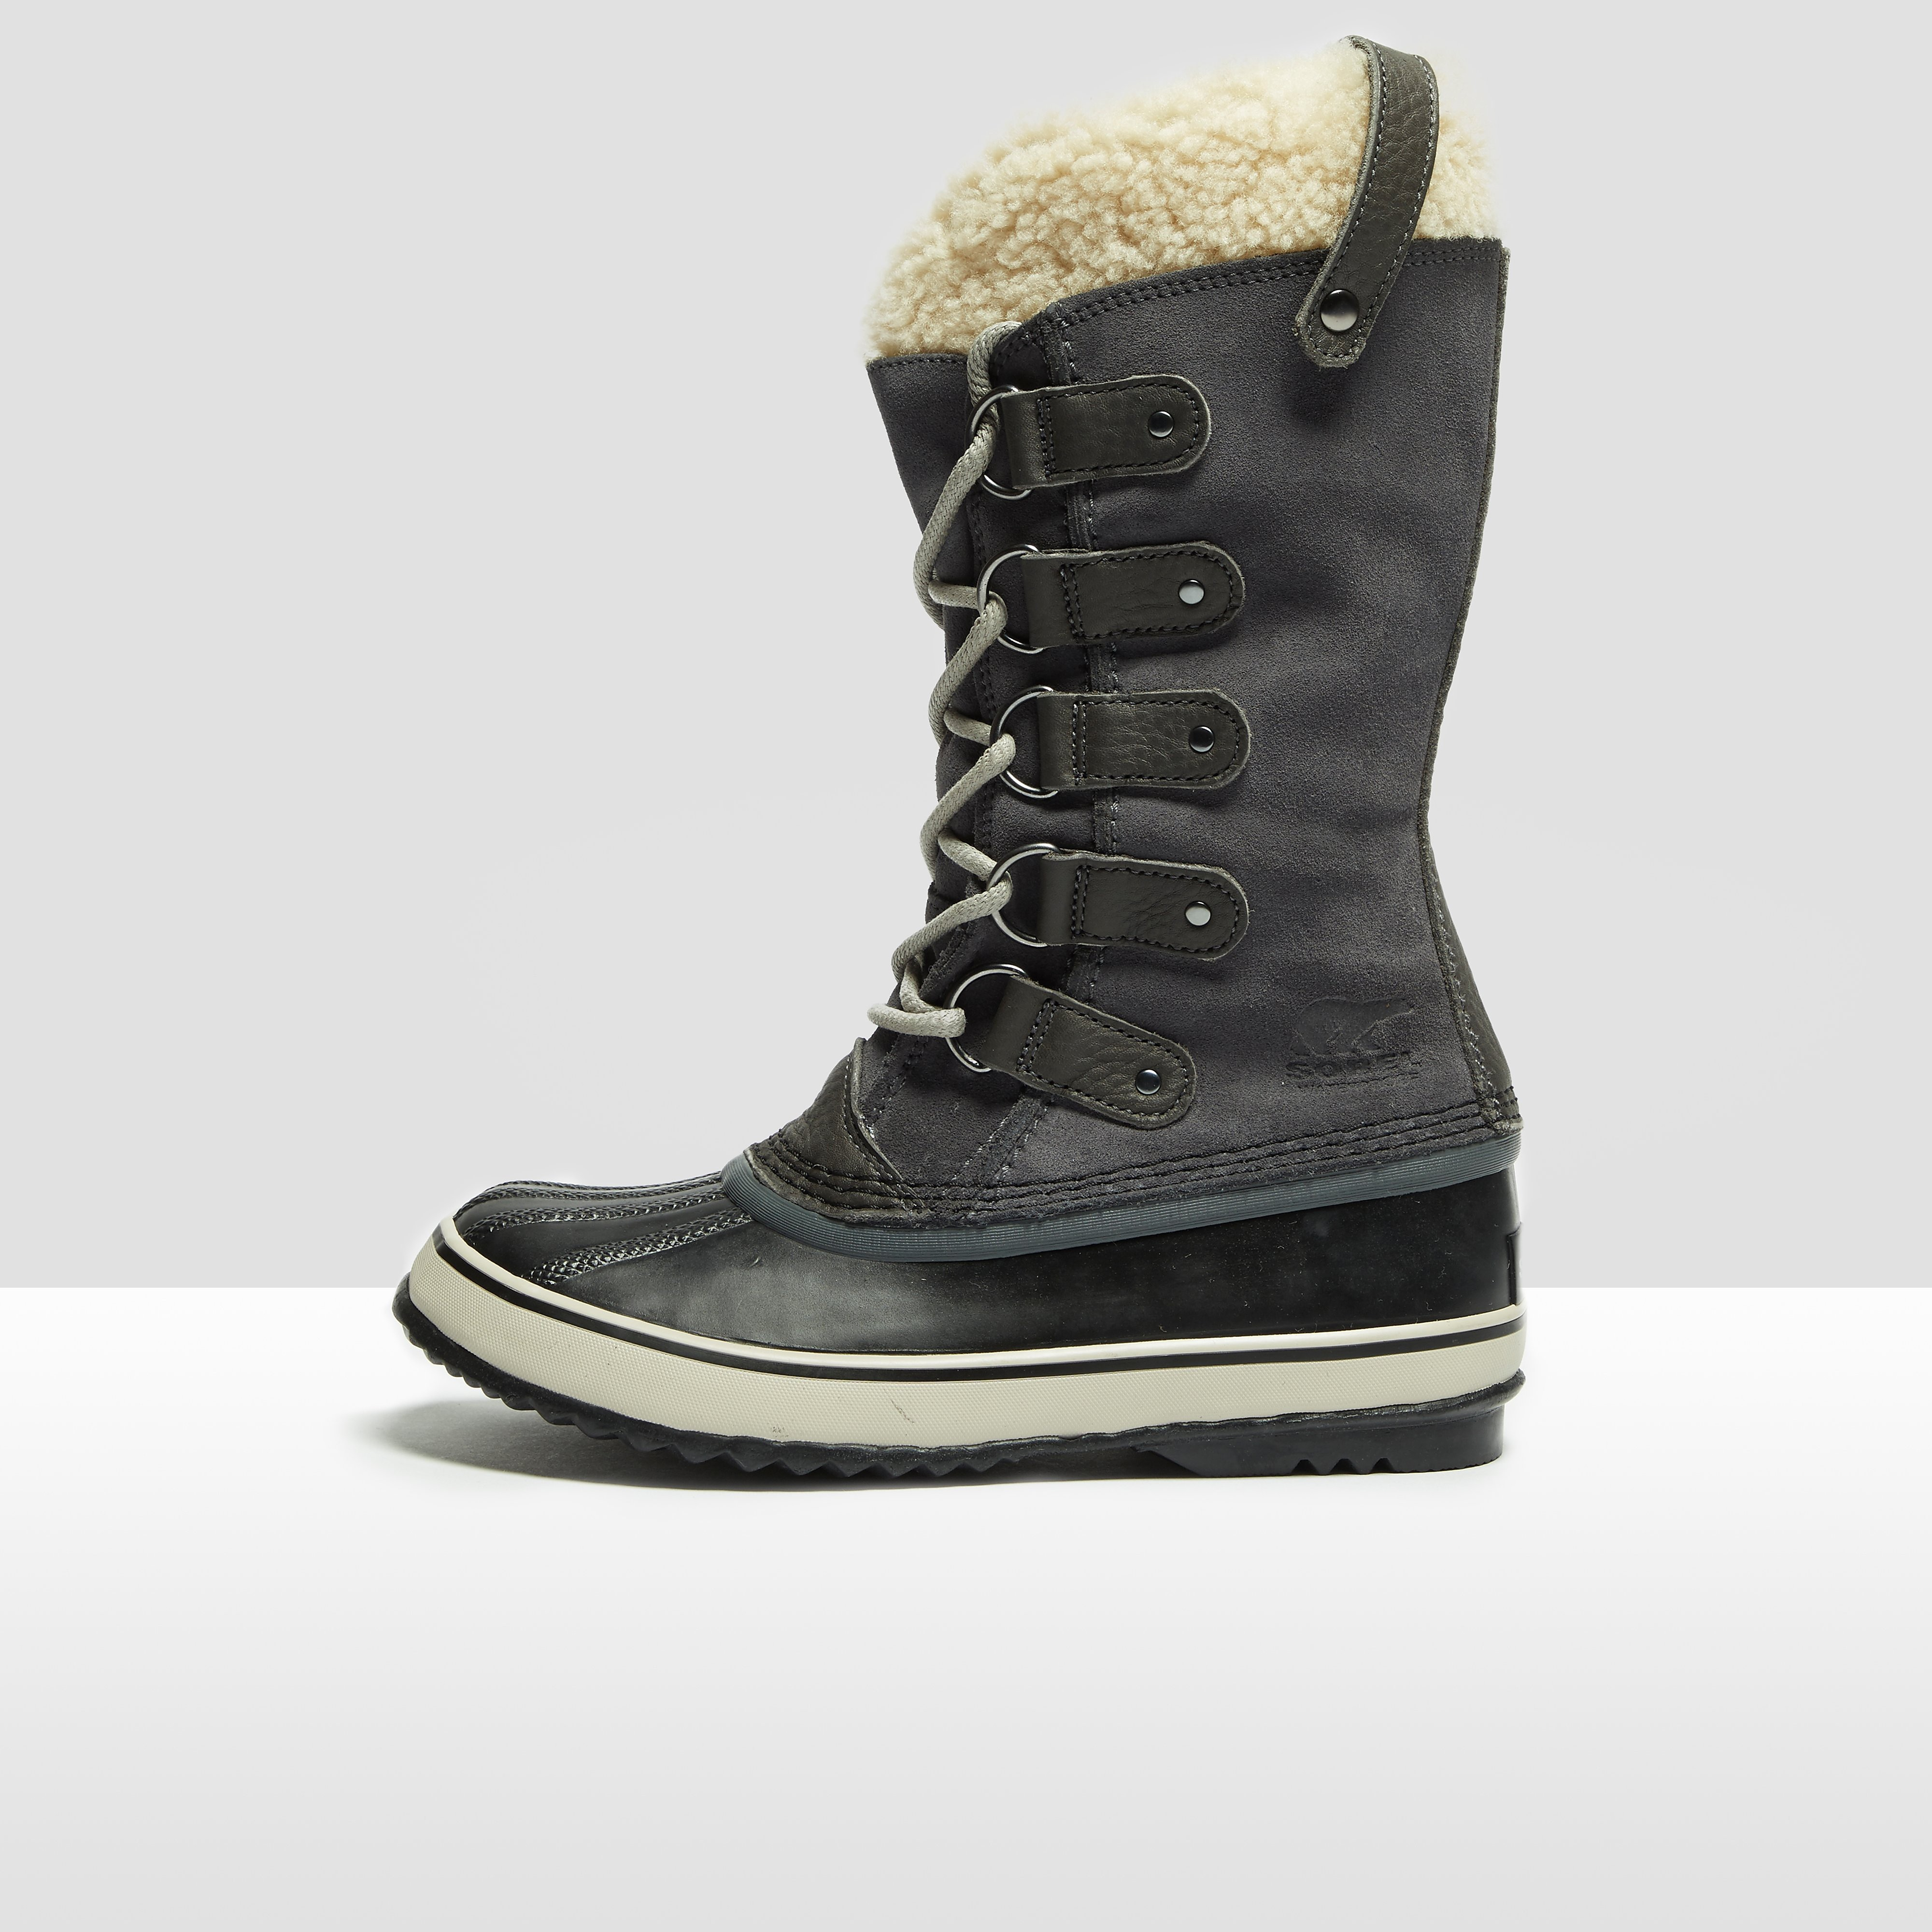 Sorel Joan Of Arctic Women's Shearling Boots